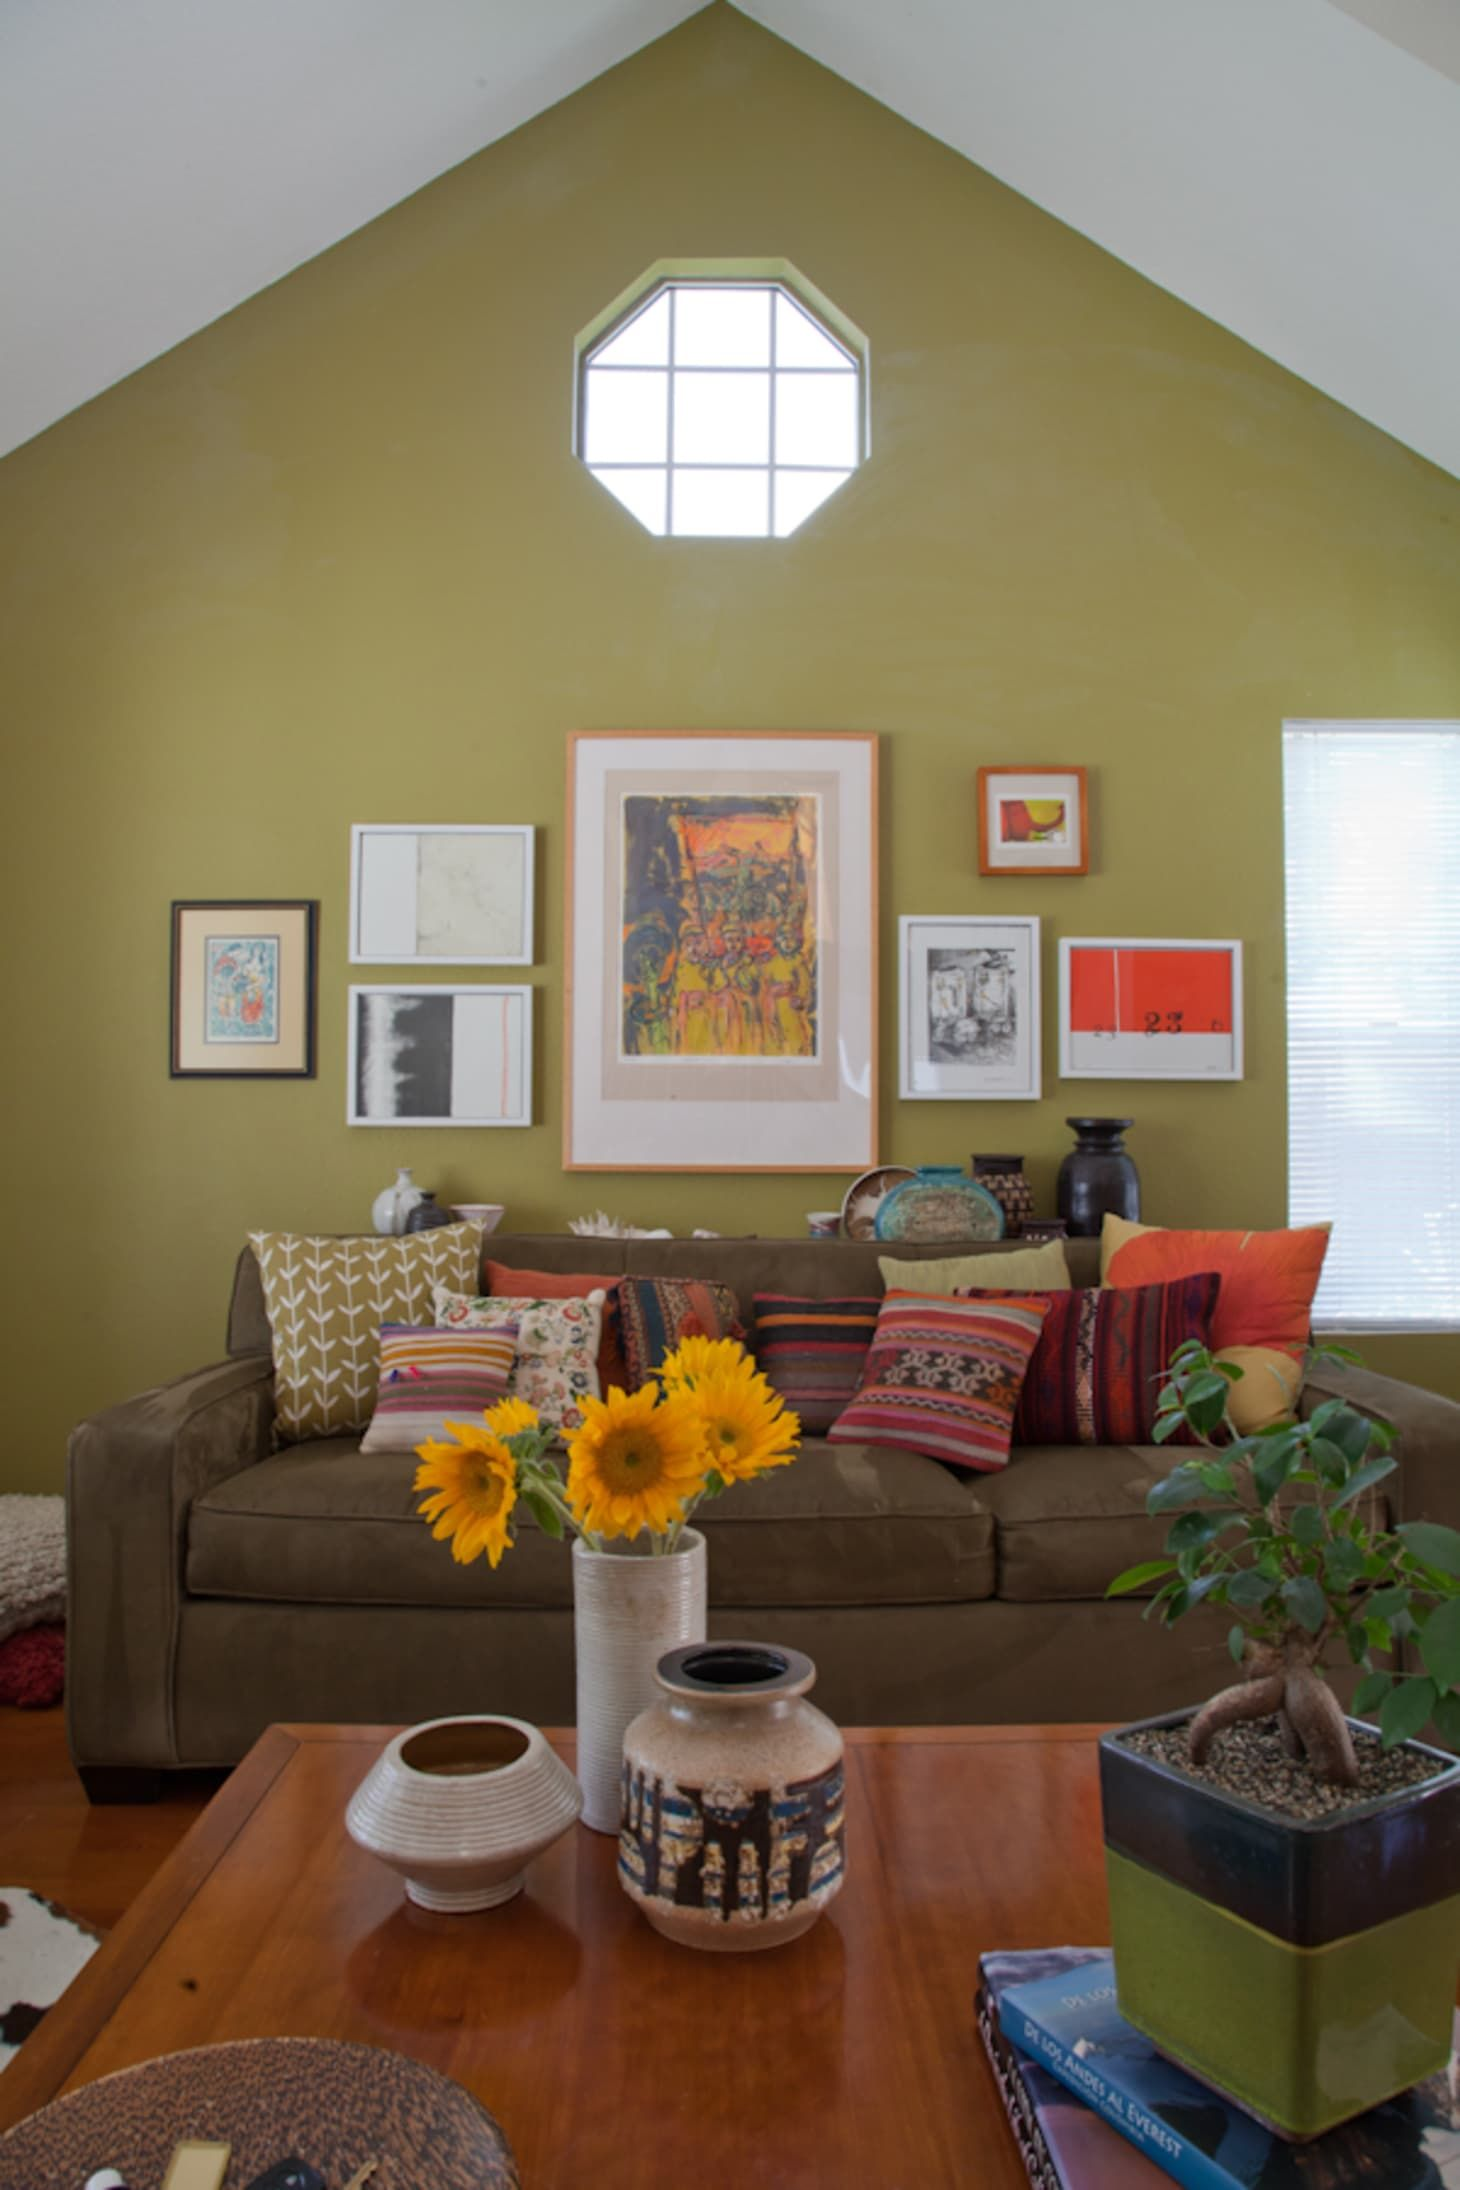 35 Olive Green Paint Ideas That'll Make Any Room Feel More ...